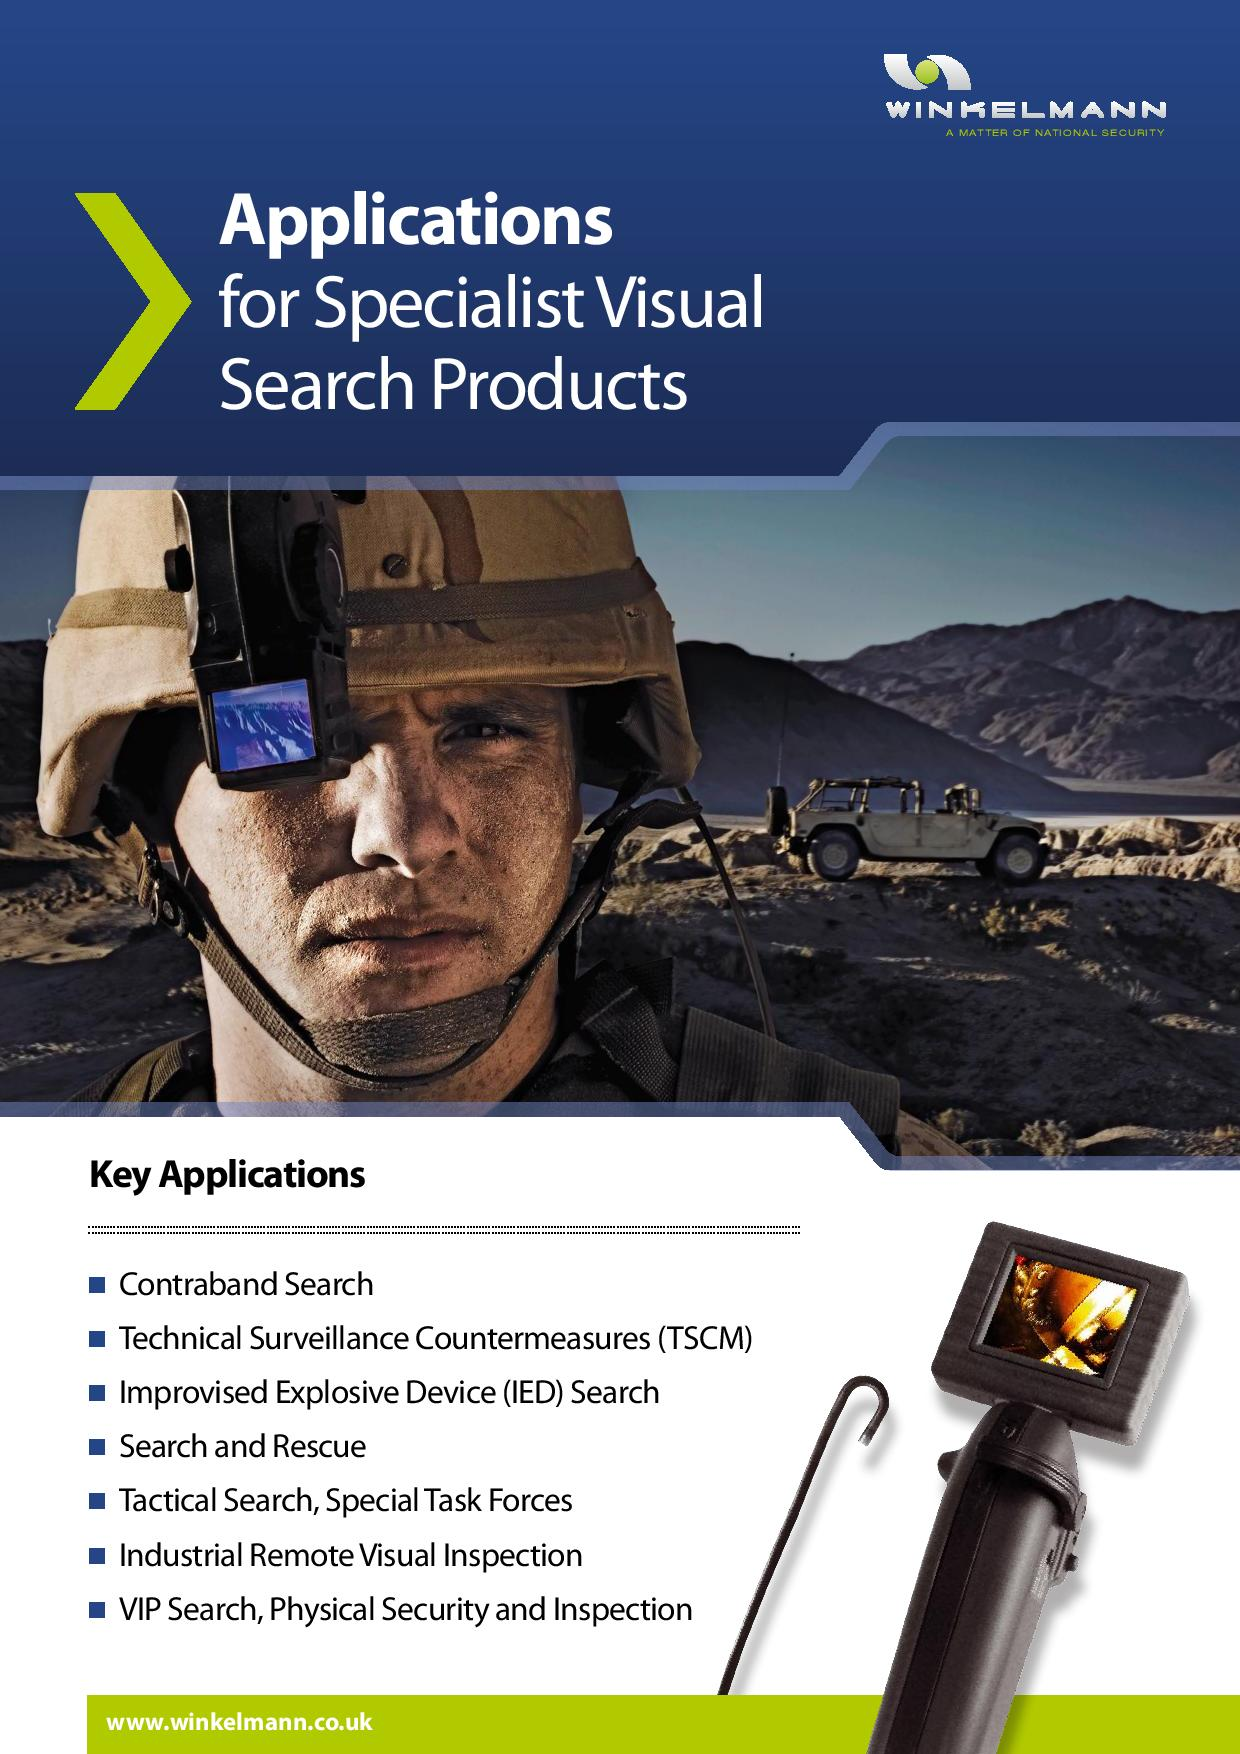 Applications for Specialist Visual Search Products